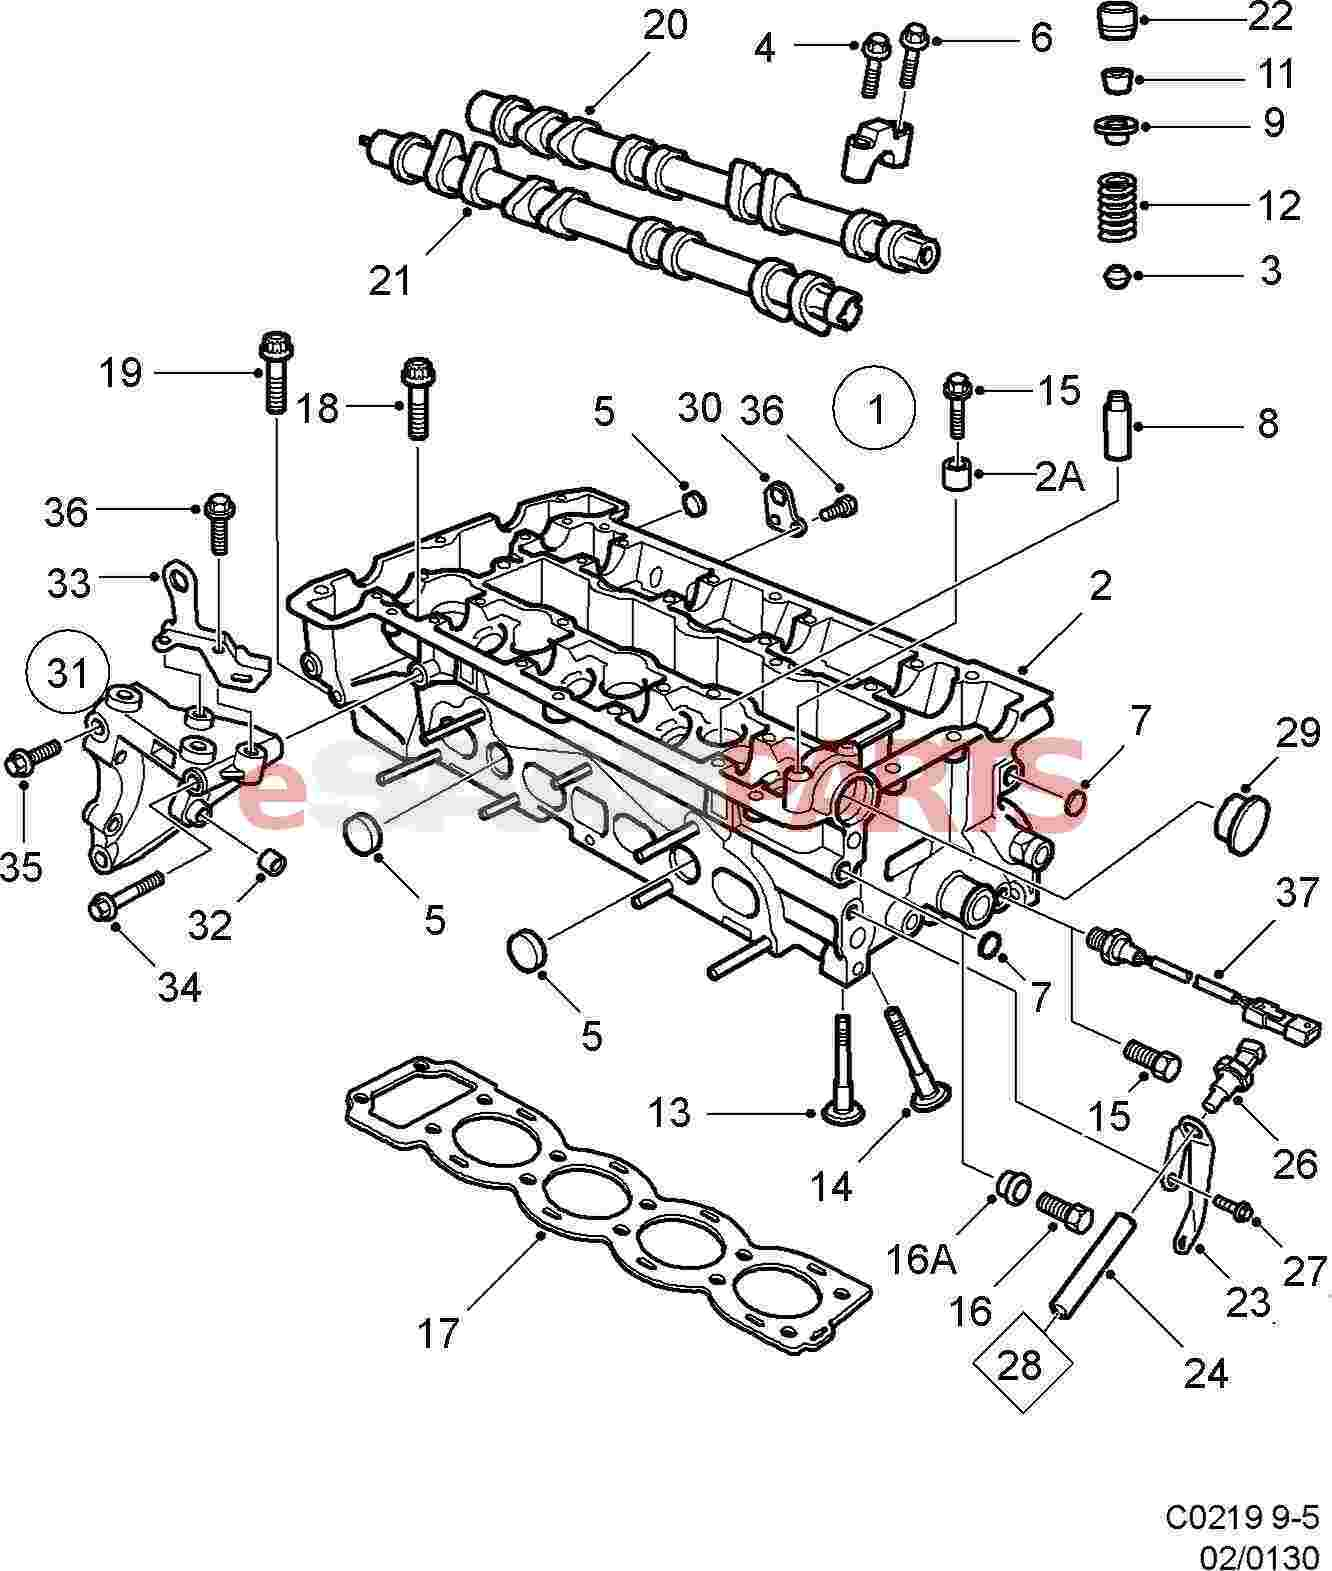 2000 Jetta 2 0 Engine Diagram 2000 VW Jetta Suspension